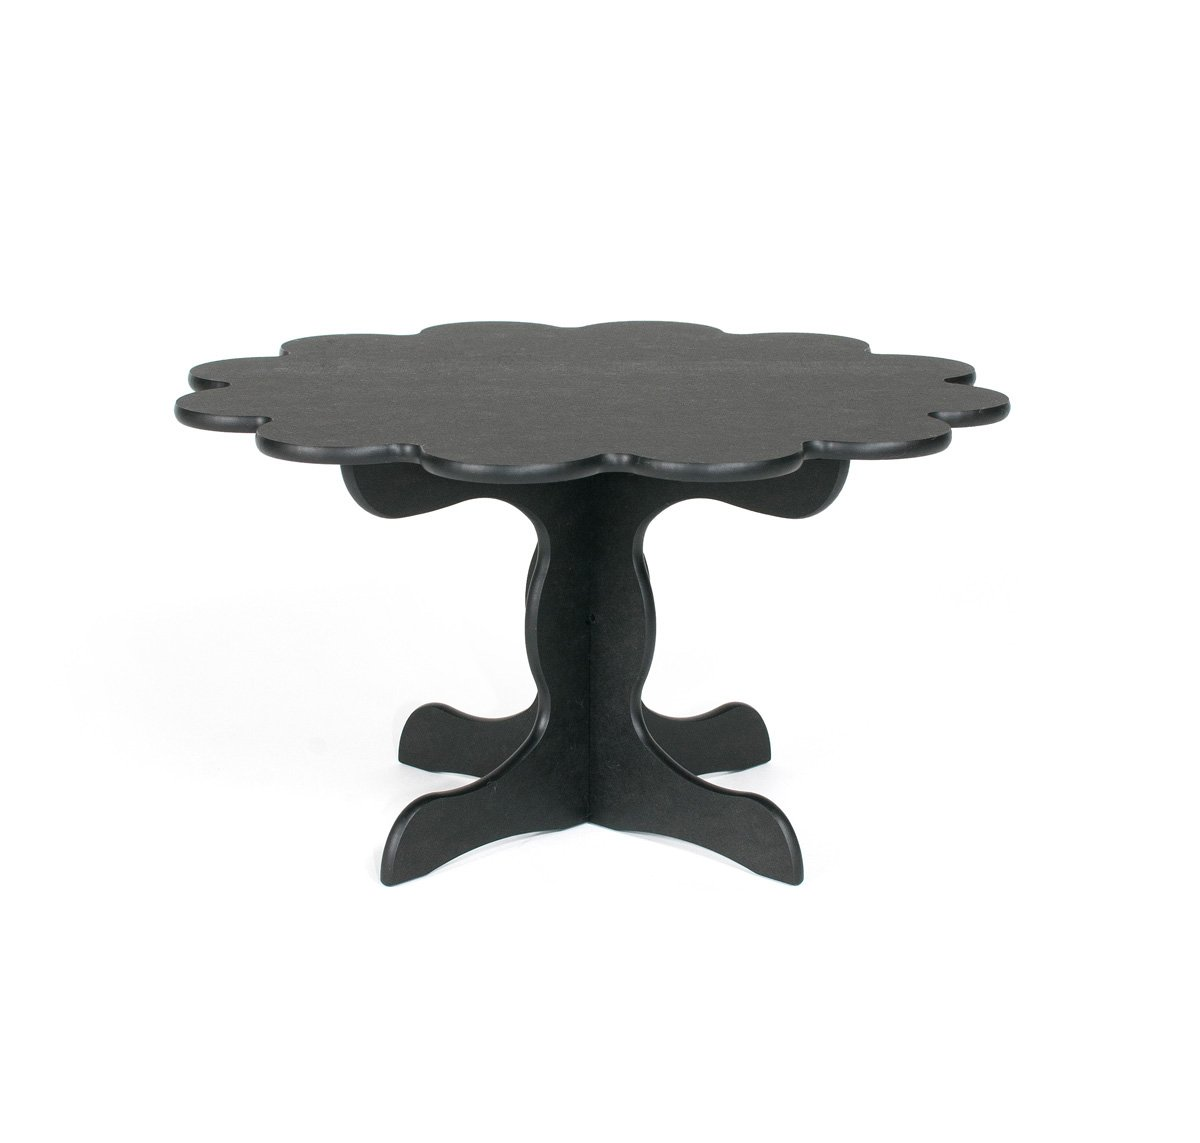 Epicurean Cutting Surfaces Epicurean Pastry Stand, 9.25'' by 5.25'', Slate